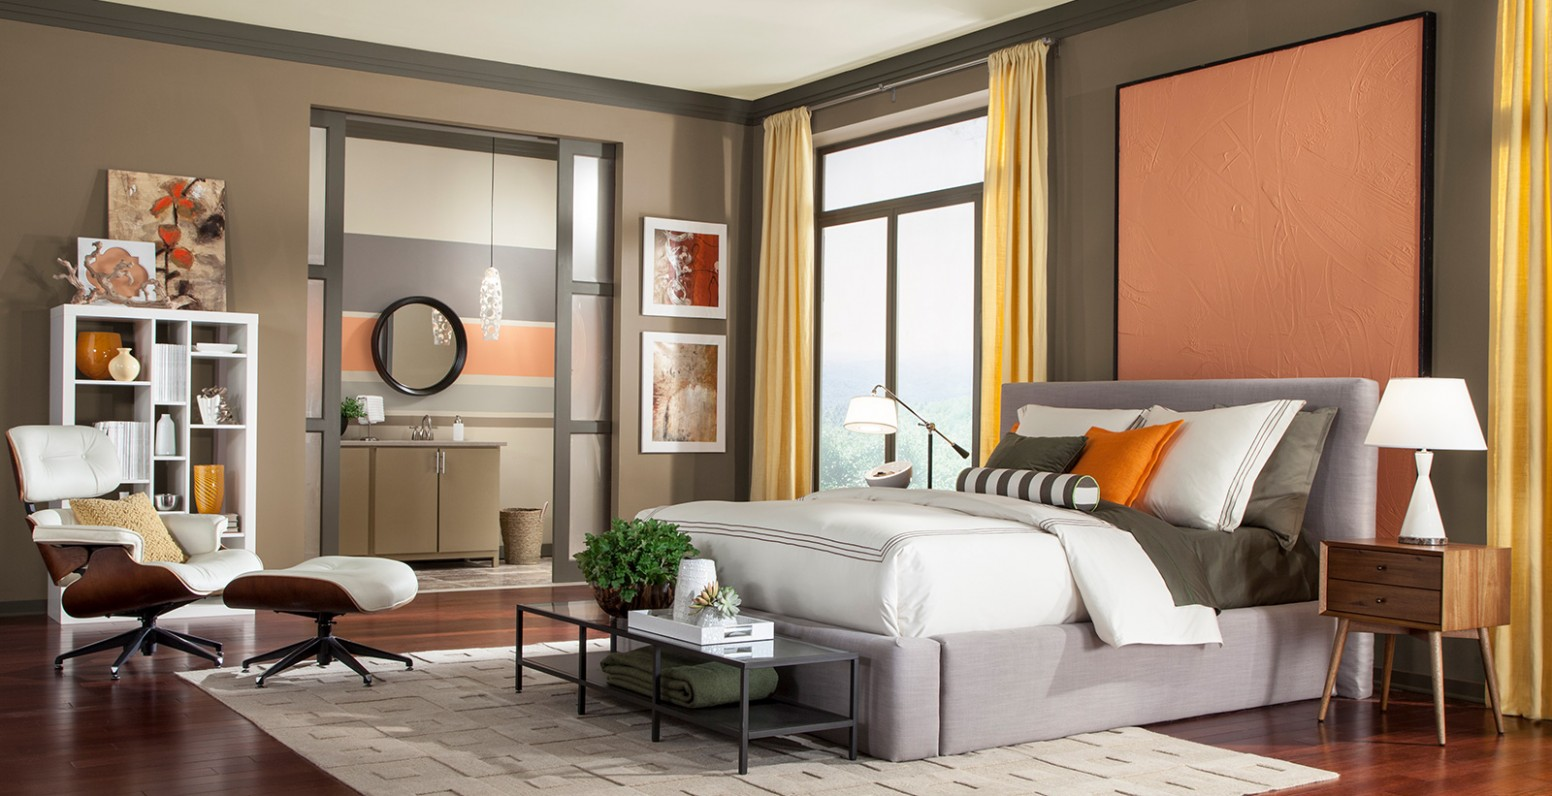 Brown Bedroom Walls Ideas and Inspirational Paint Colors  Behr - Bedroom Ideas Brown